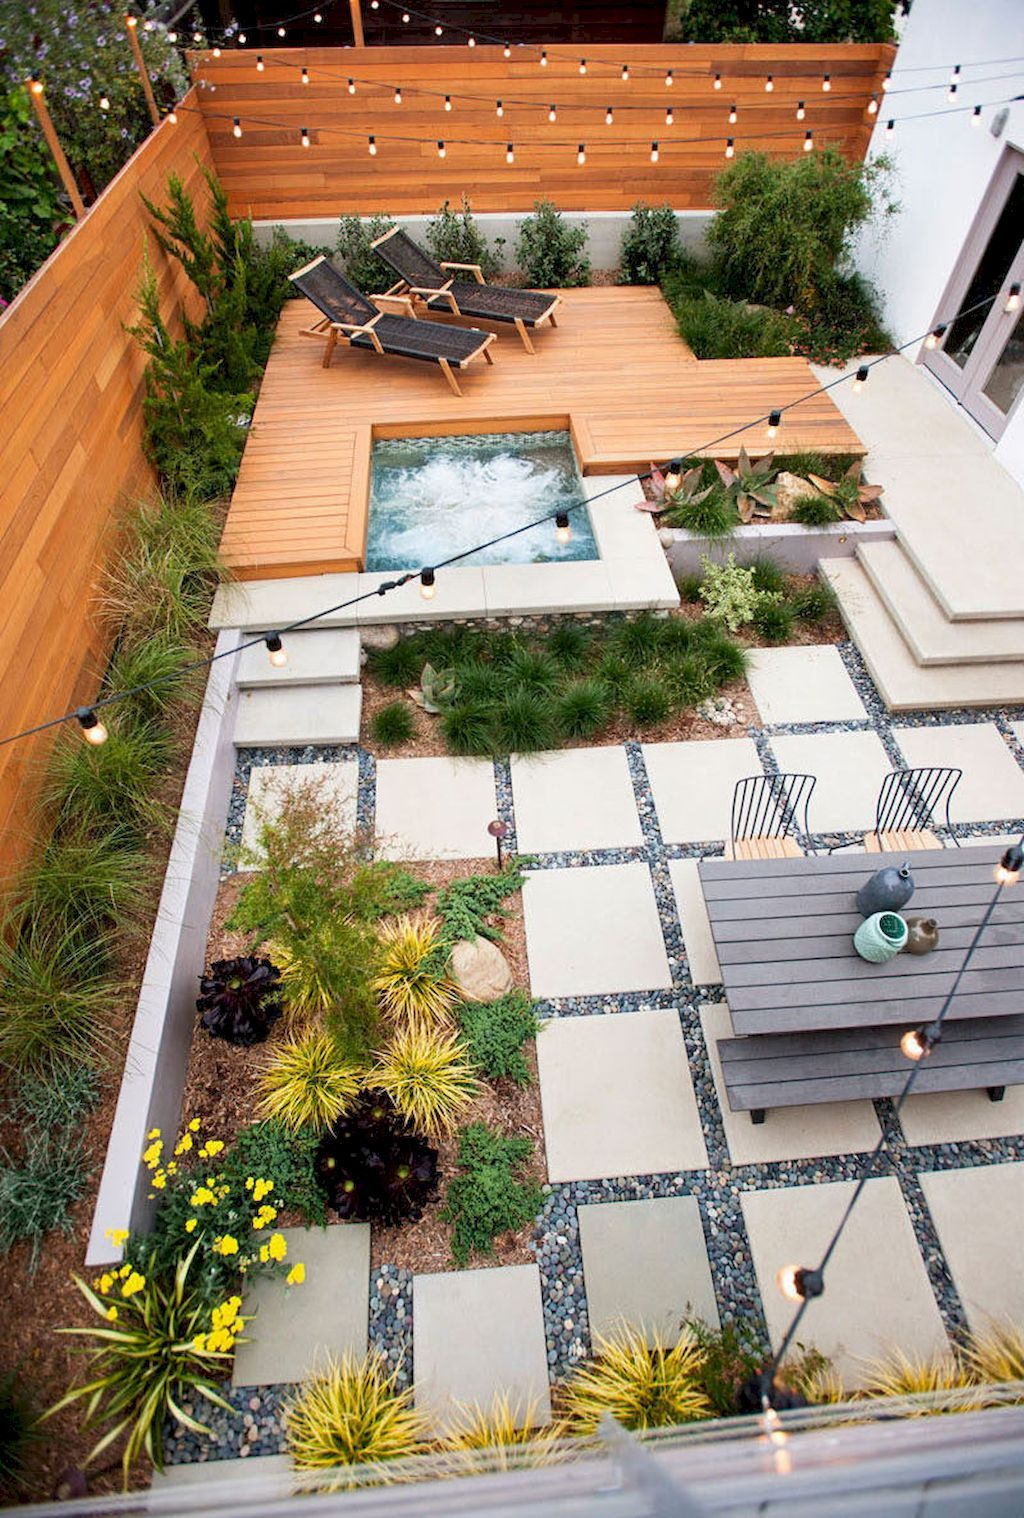 80 Small Backyard Landscaping Ideas On A Budget For The inside 13 Genius Initiatives of How to Makeover Landscaping Backyard Ideas Inexpensive